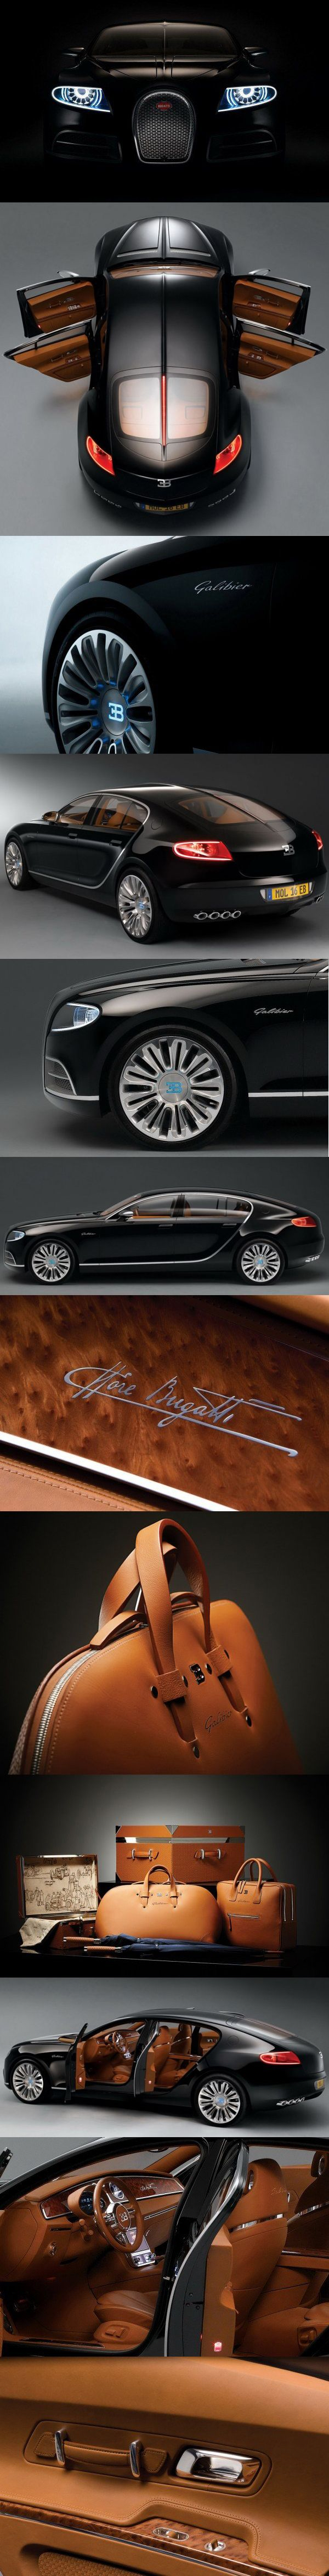 """Bugatti Galibier to be """"faster than anything on the market"""""""